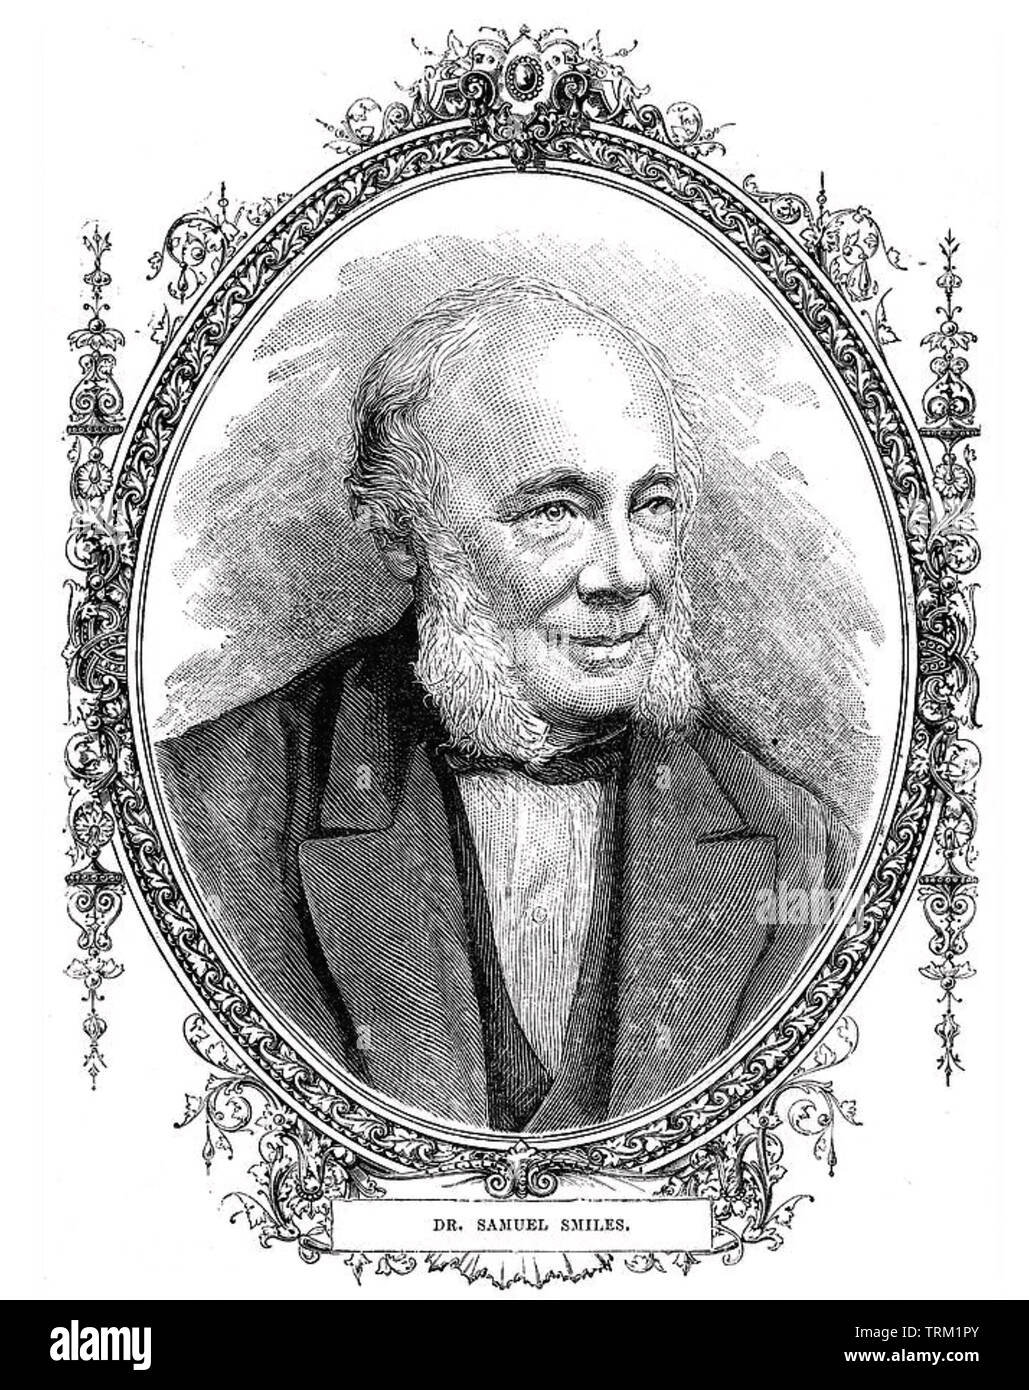 SAMUEL SMILES (1812-1904) Scottish author and government reformer and author of Self-Help (1859) - Stock Image